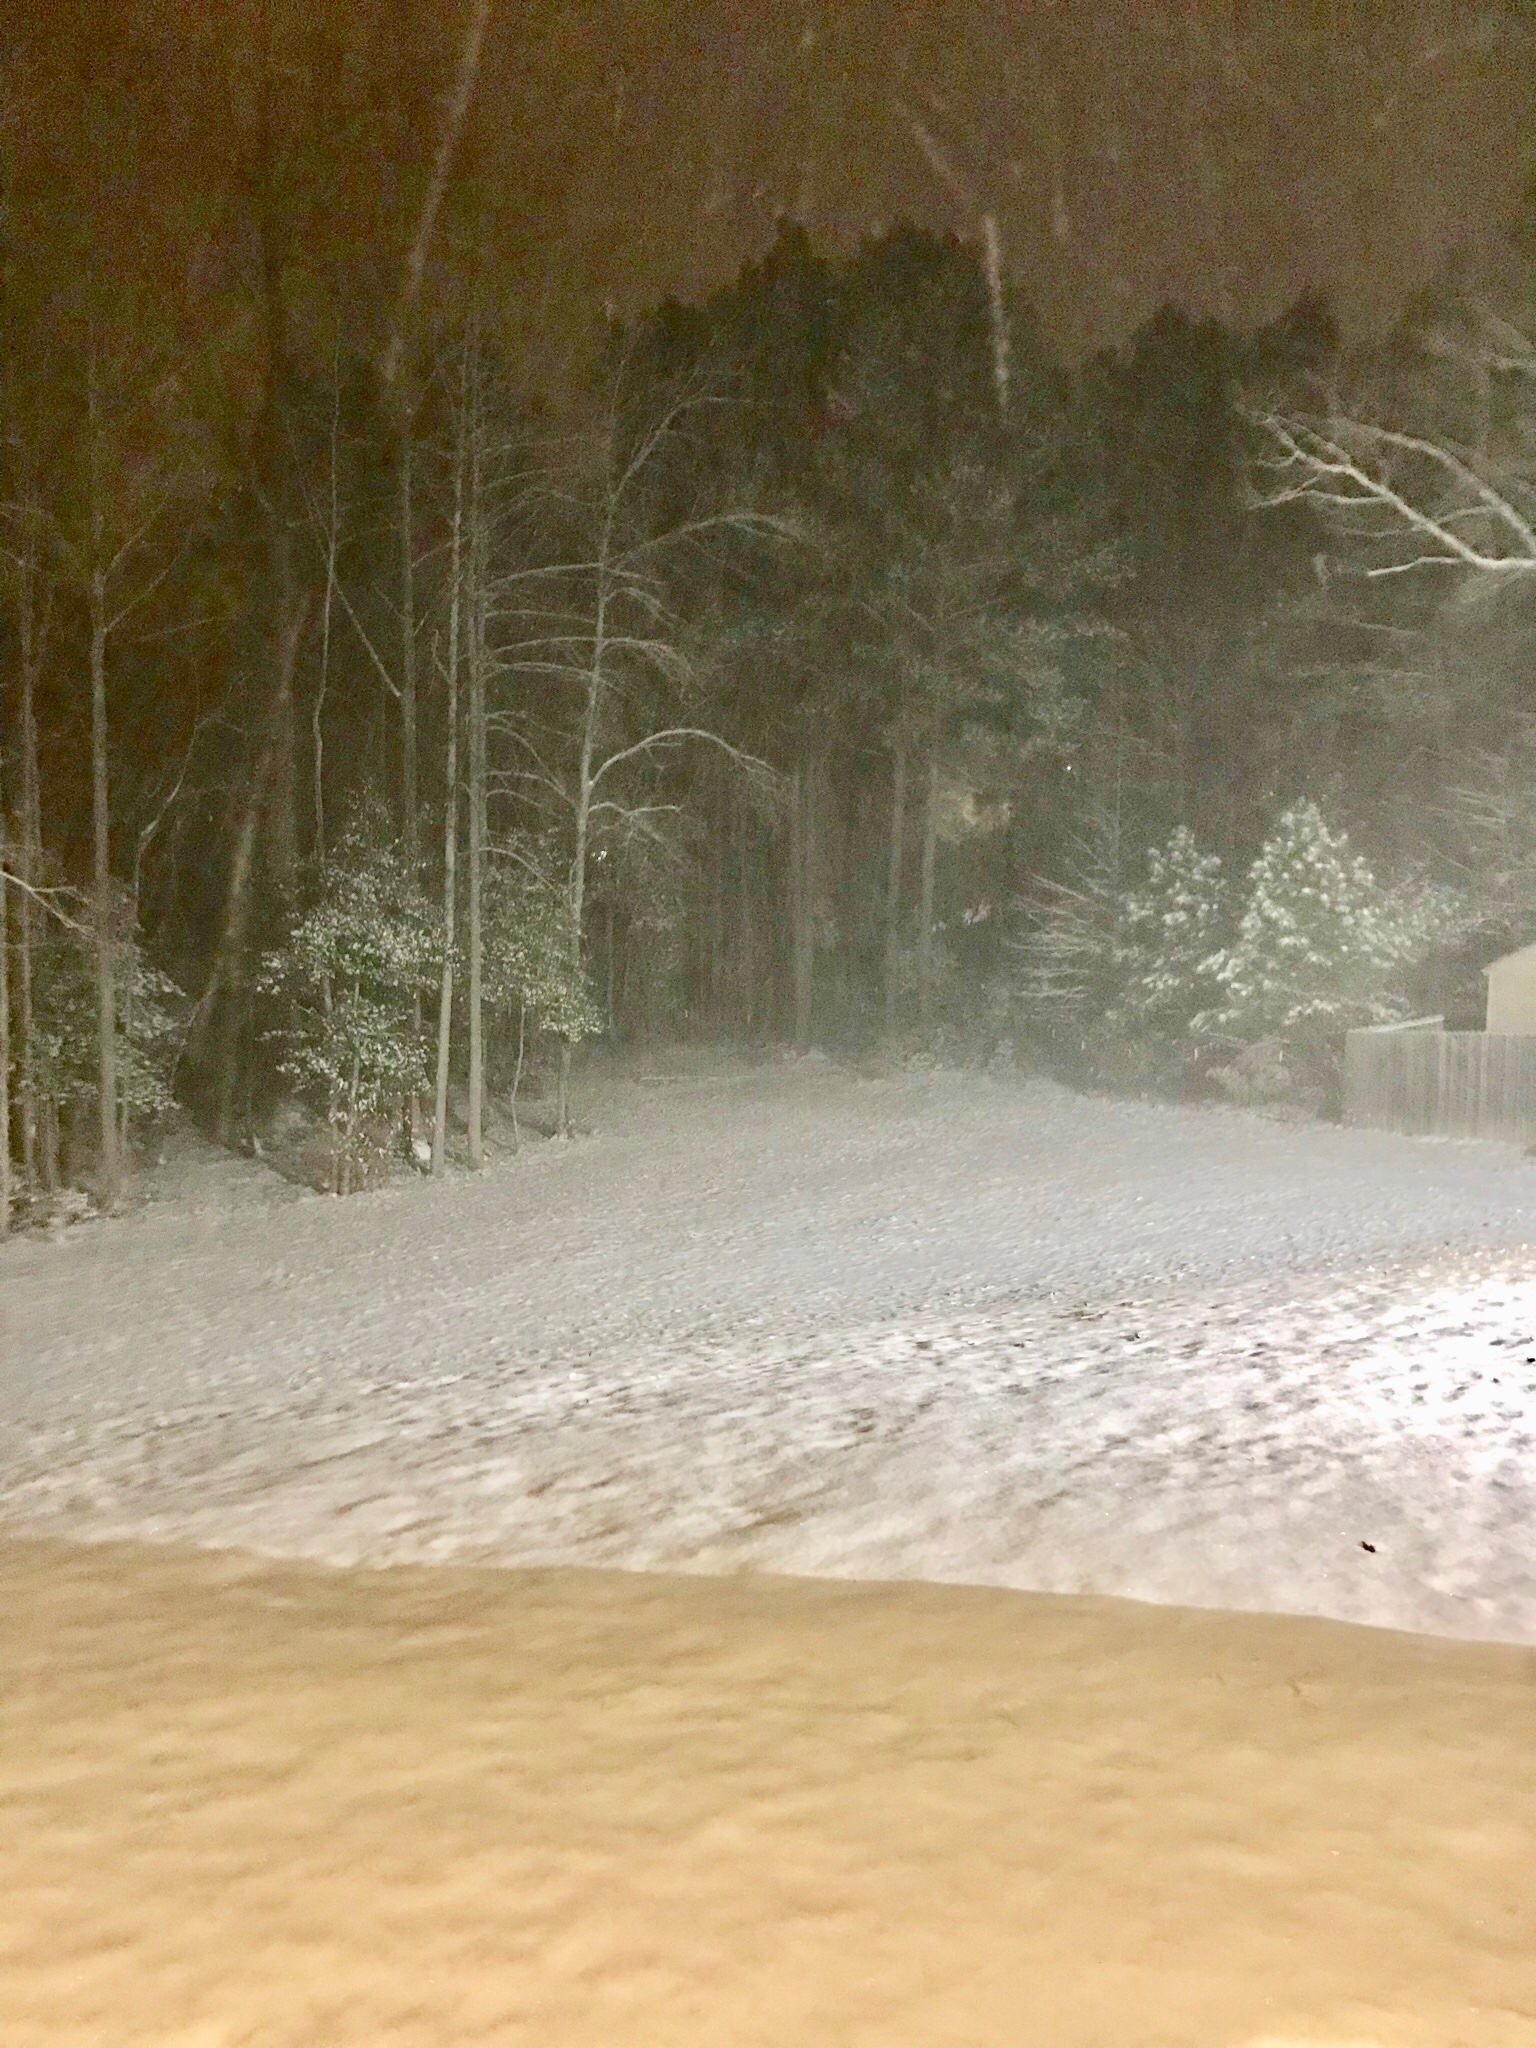 <div class='meta'><div class='origin-logo' data-origin='none'></div><span class='caption-text' data-credit='ABC11 Eyewitness'>Snow in Raeford</span></div>